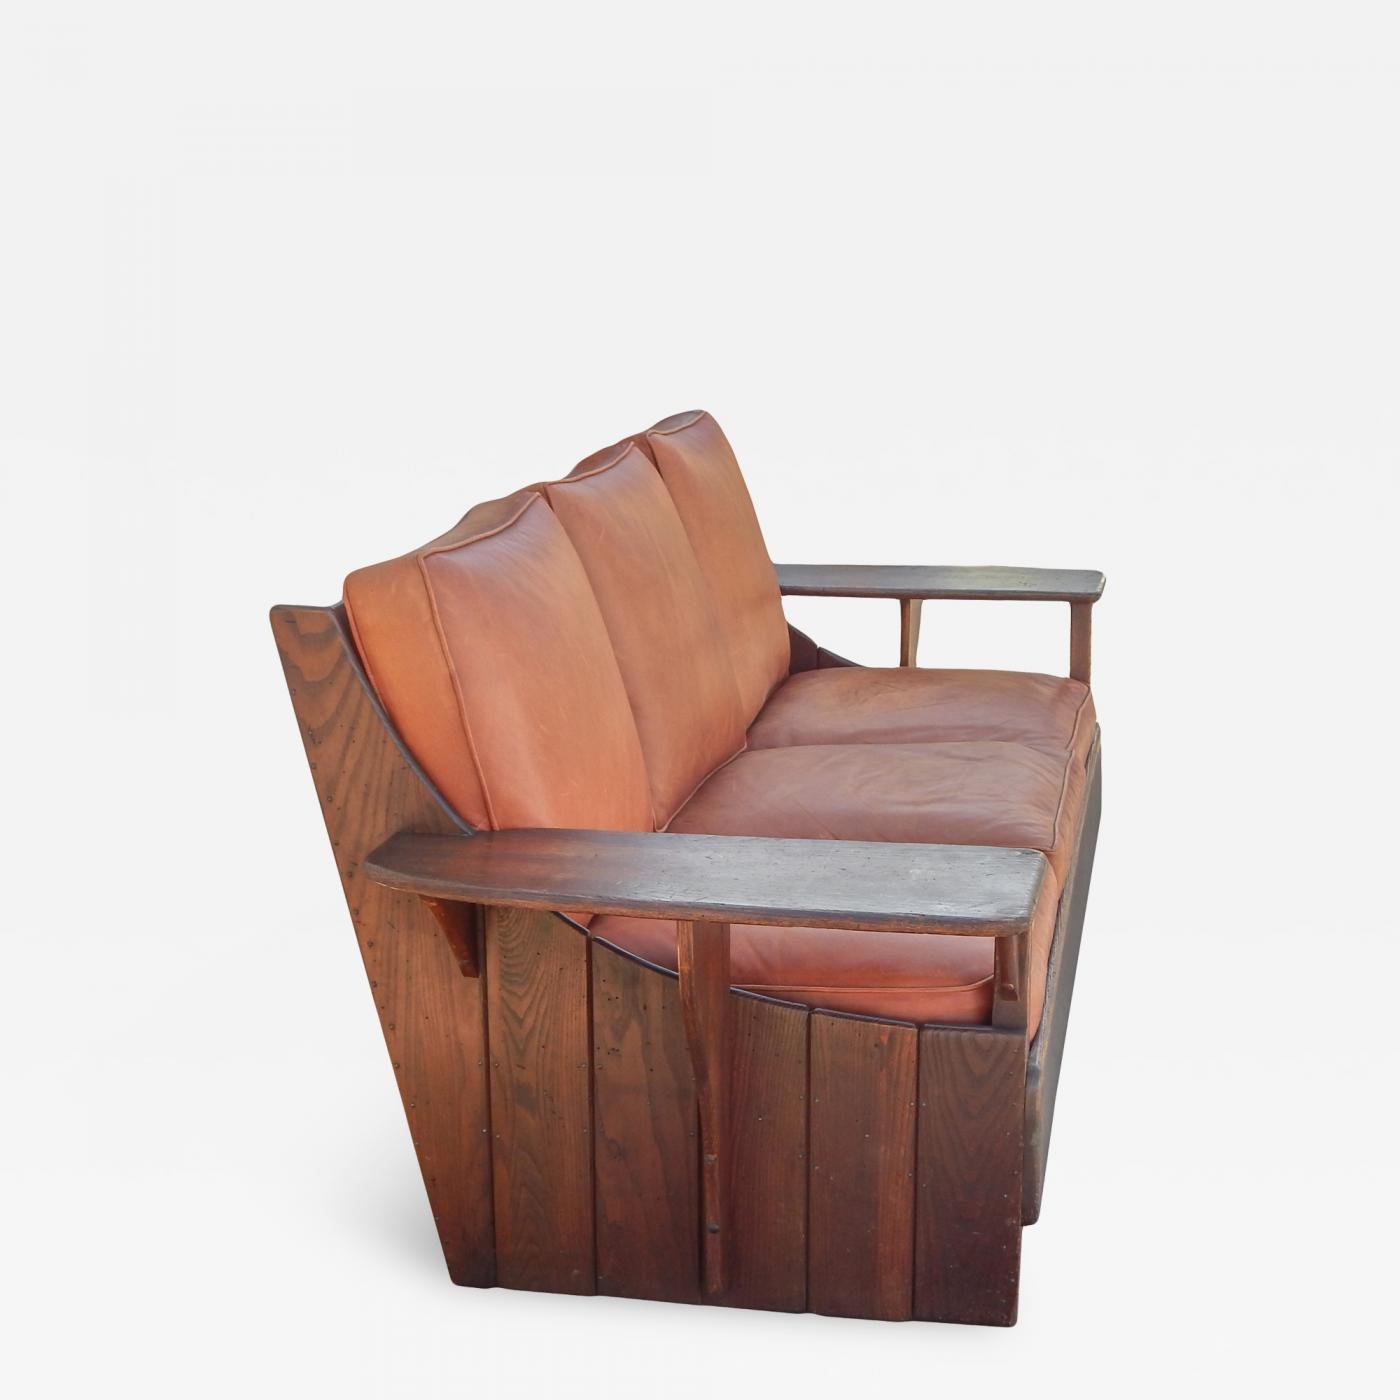 Terrific Old Hickory Furniture Co Hickory 1930S Paddle Arm Sofa W Andrewgaddart Wooden Chair Designs For Living Room Andrewgaddartcom